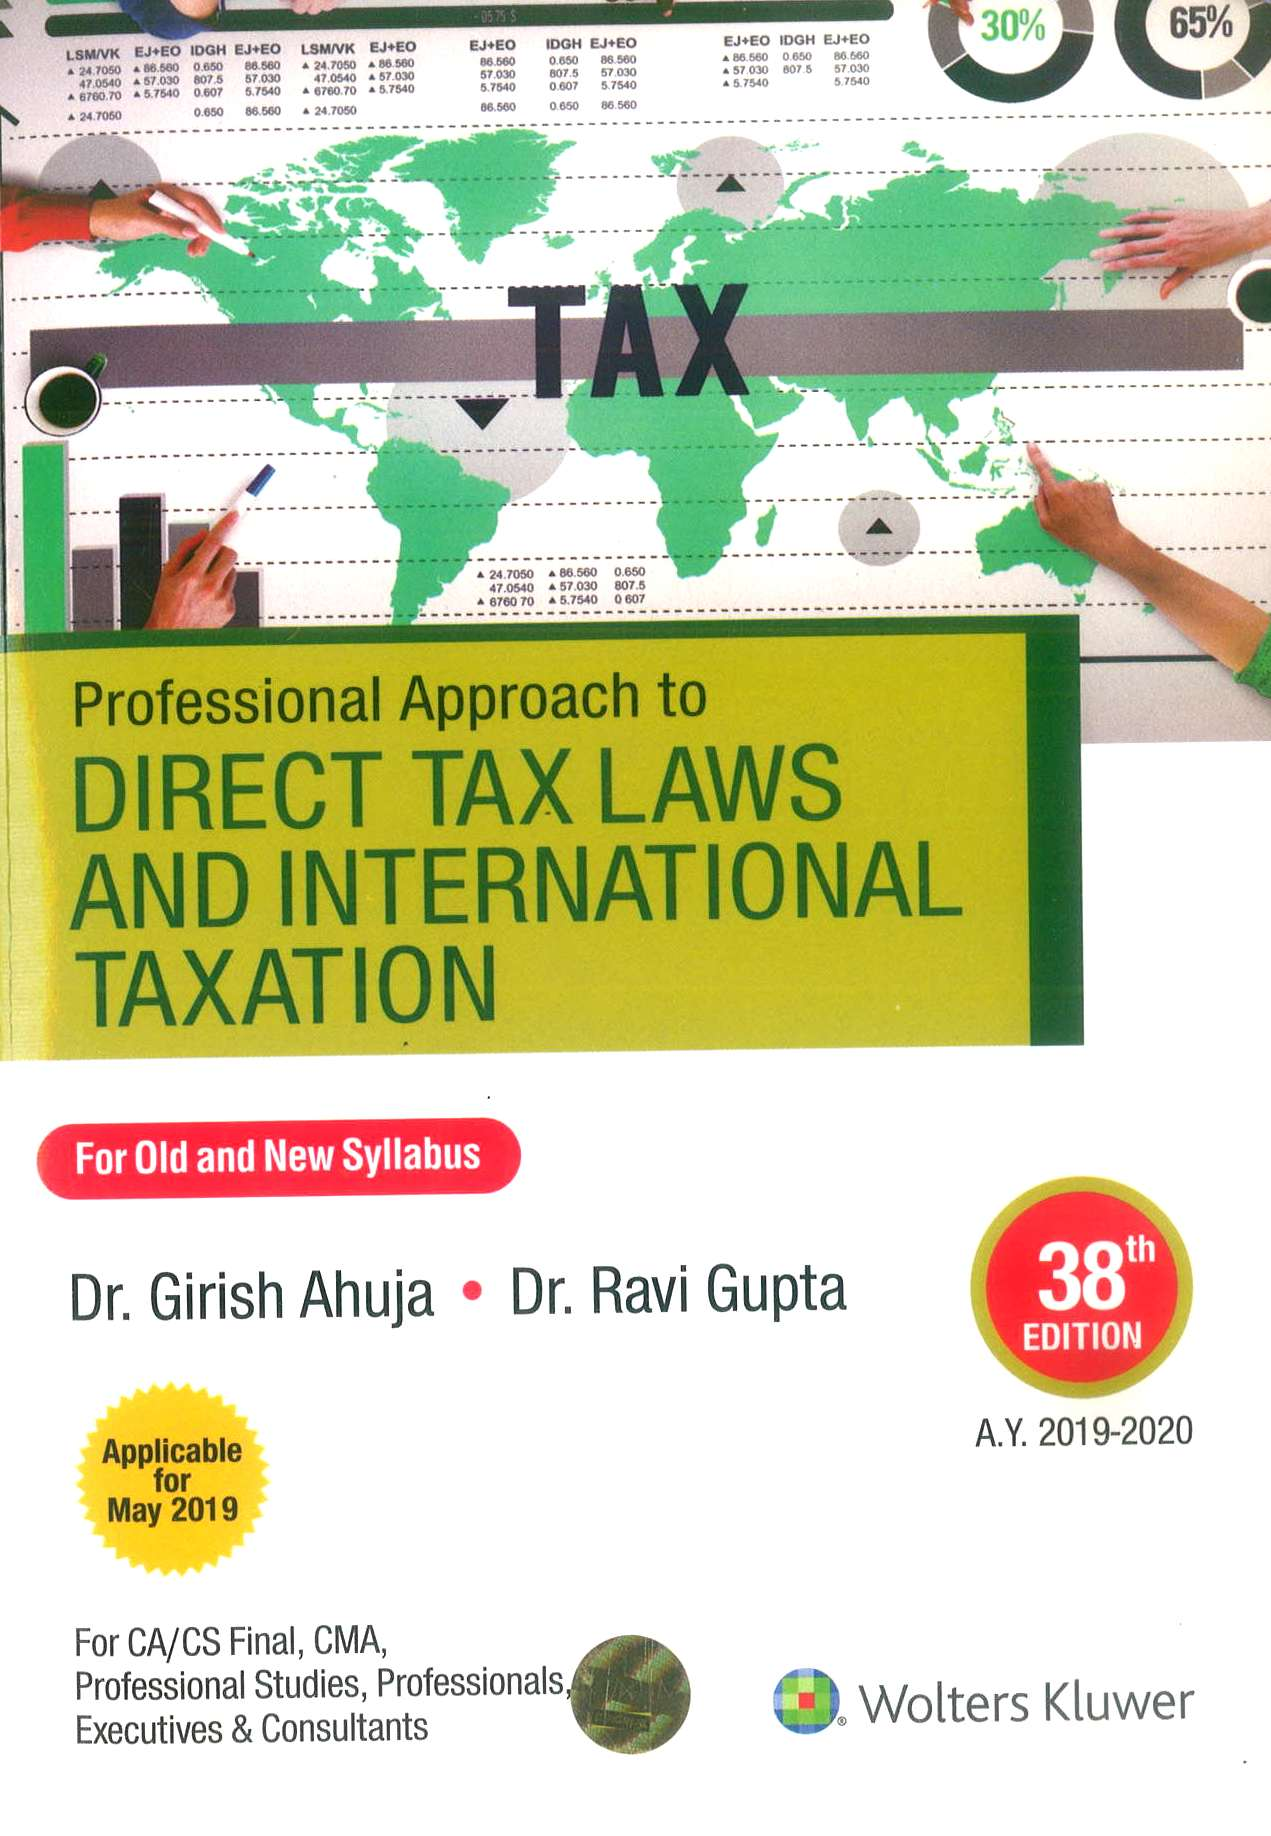 CCH Professional Approach to Direct Tax Laws and International Taxation for Old and New Syllabus for CA Final By Dr Girish Ahuja Dr Ravi Gupta Applicable for May 2019 Exam